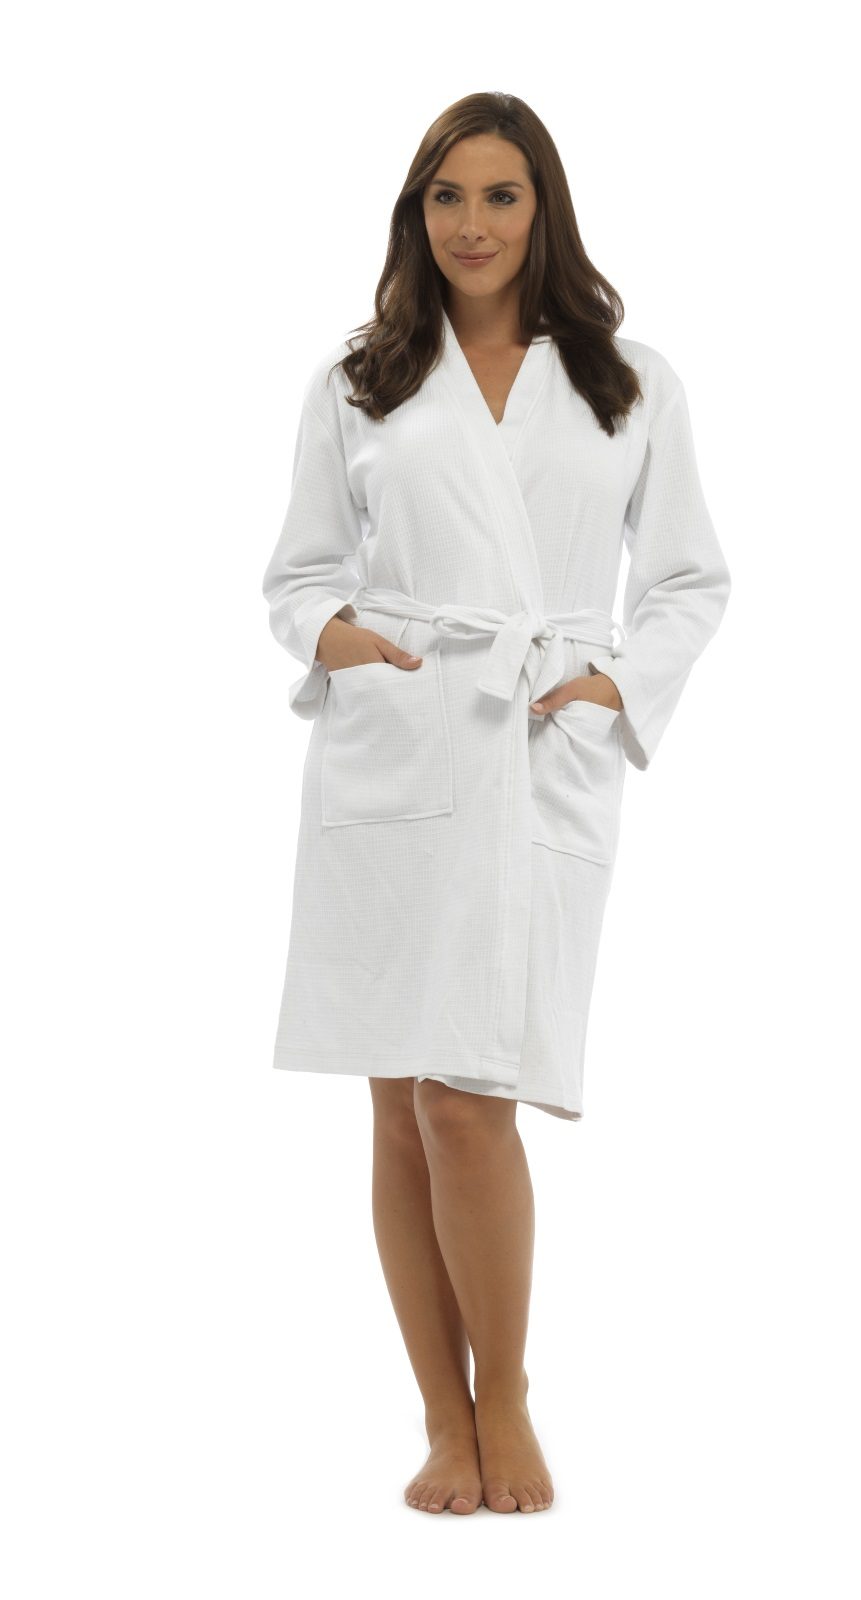 Aibrou Unisex Waffle Dressing Gown Cotton Lightweight Bath Robe for All Seasons Spa Hotel Pool Sleepwear. £ - £ Prime. out of 5 stars CityComfort Pure Cotton Dressing Gown Women Waffle Kimono Lightweight Ladies Robe. £ - £ Prime. out of 5 stars